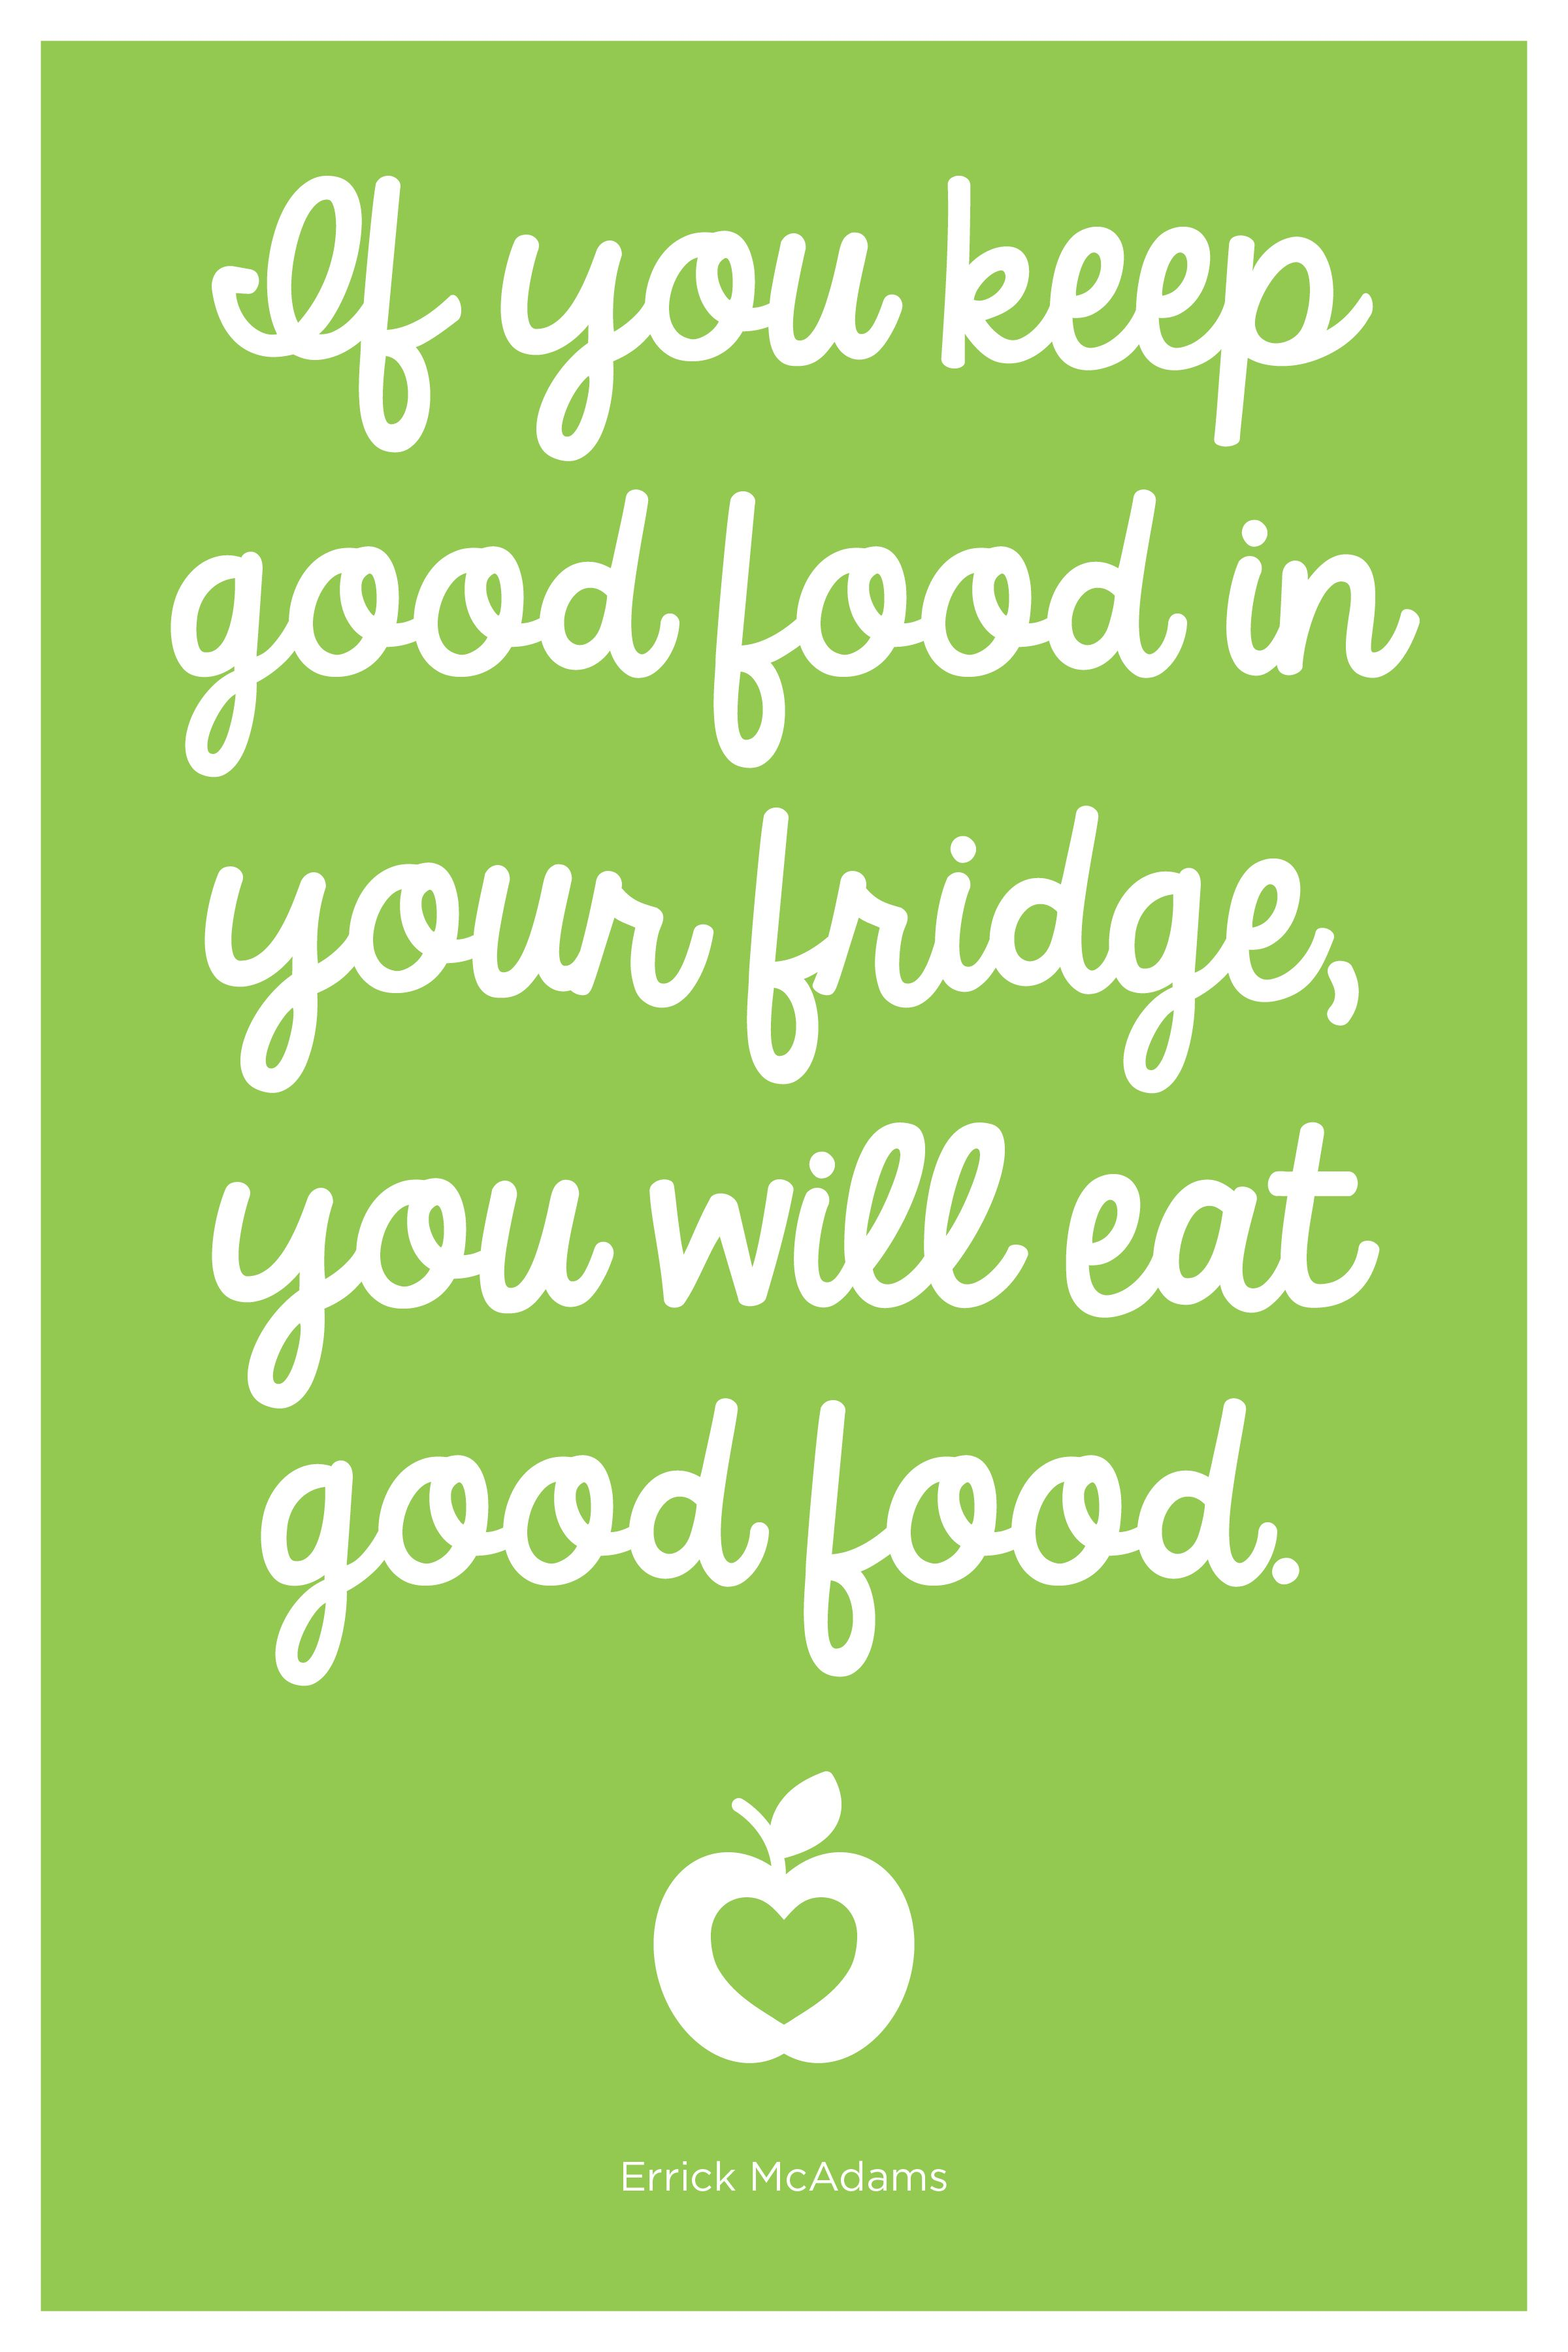 9 Inspirational Quotes | Health quotes, Nutrition quotes ...